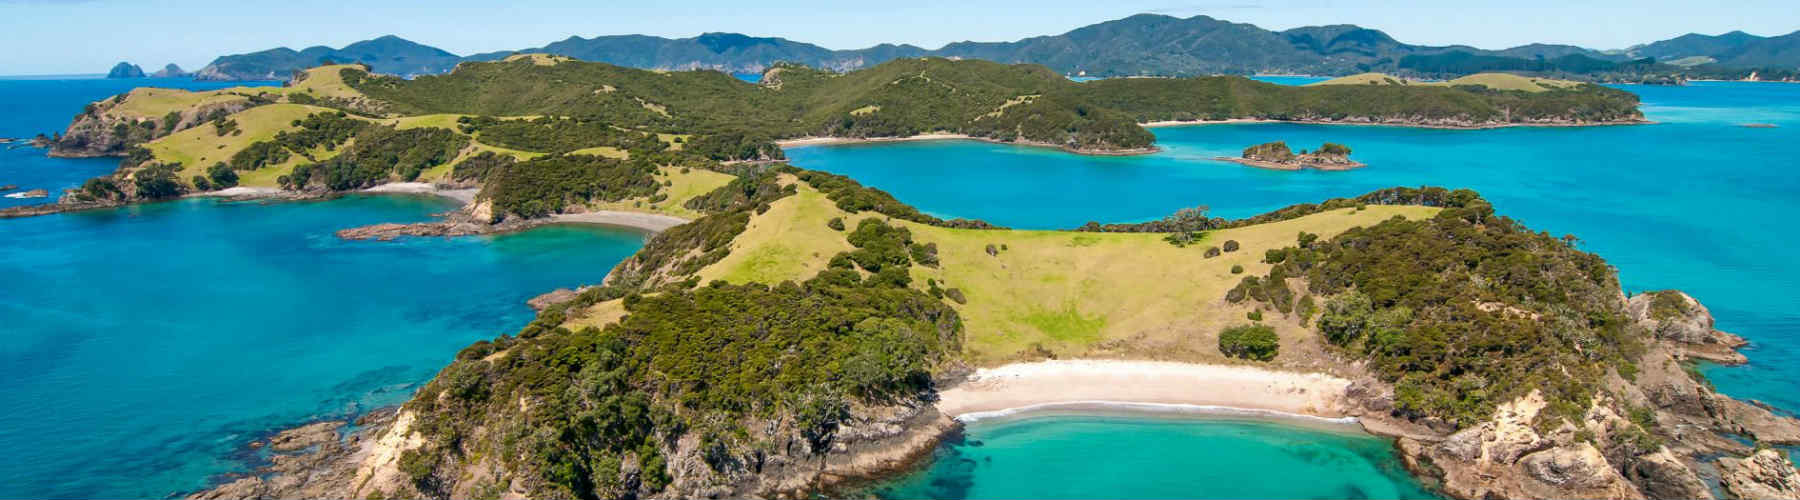 Bay of Islands best beaches